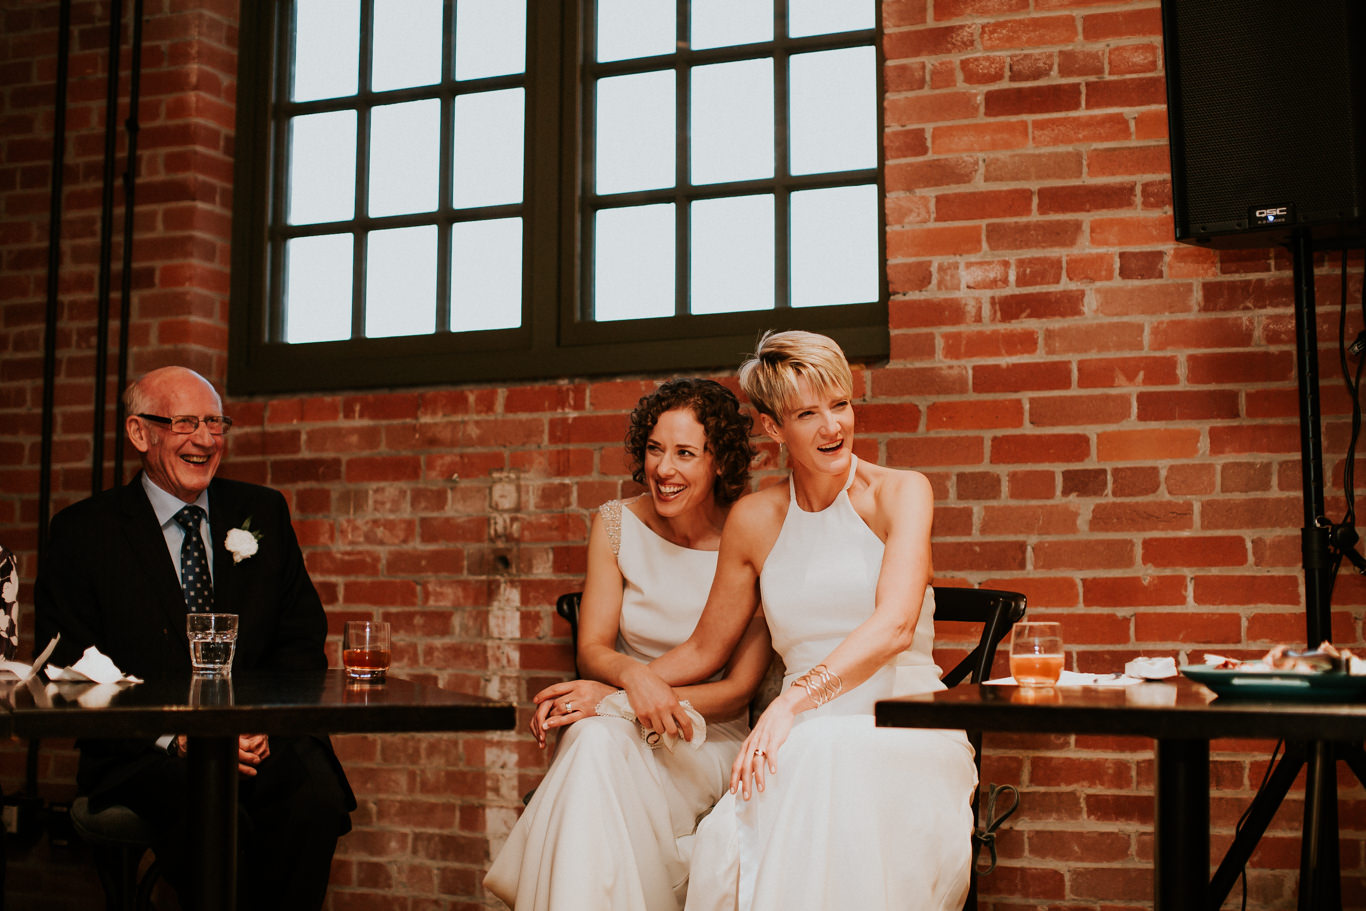 Lindsay-and-Heather-Charbar-Restaurant-Wedding-in-Calgary-177